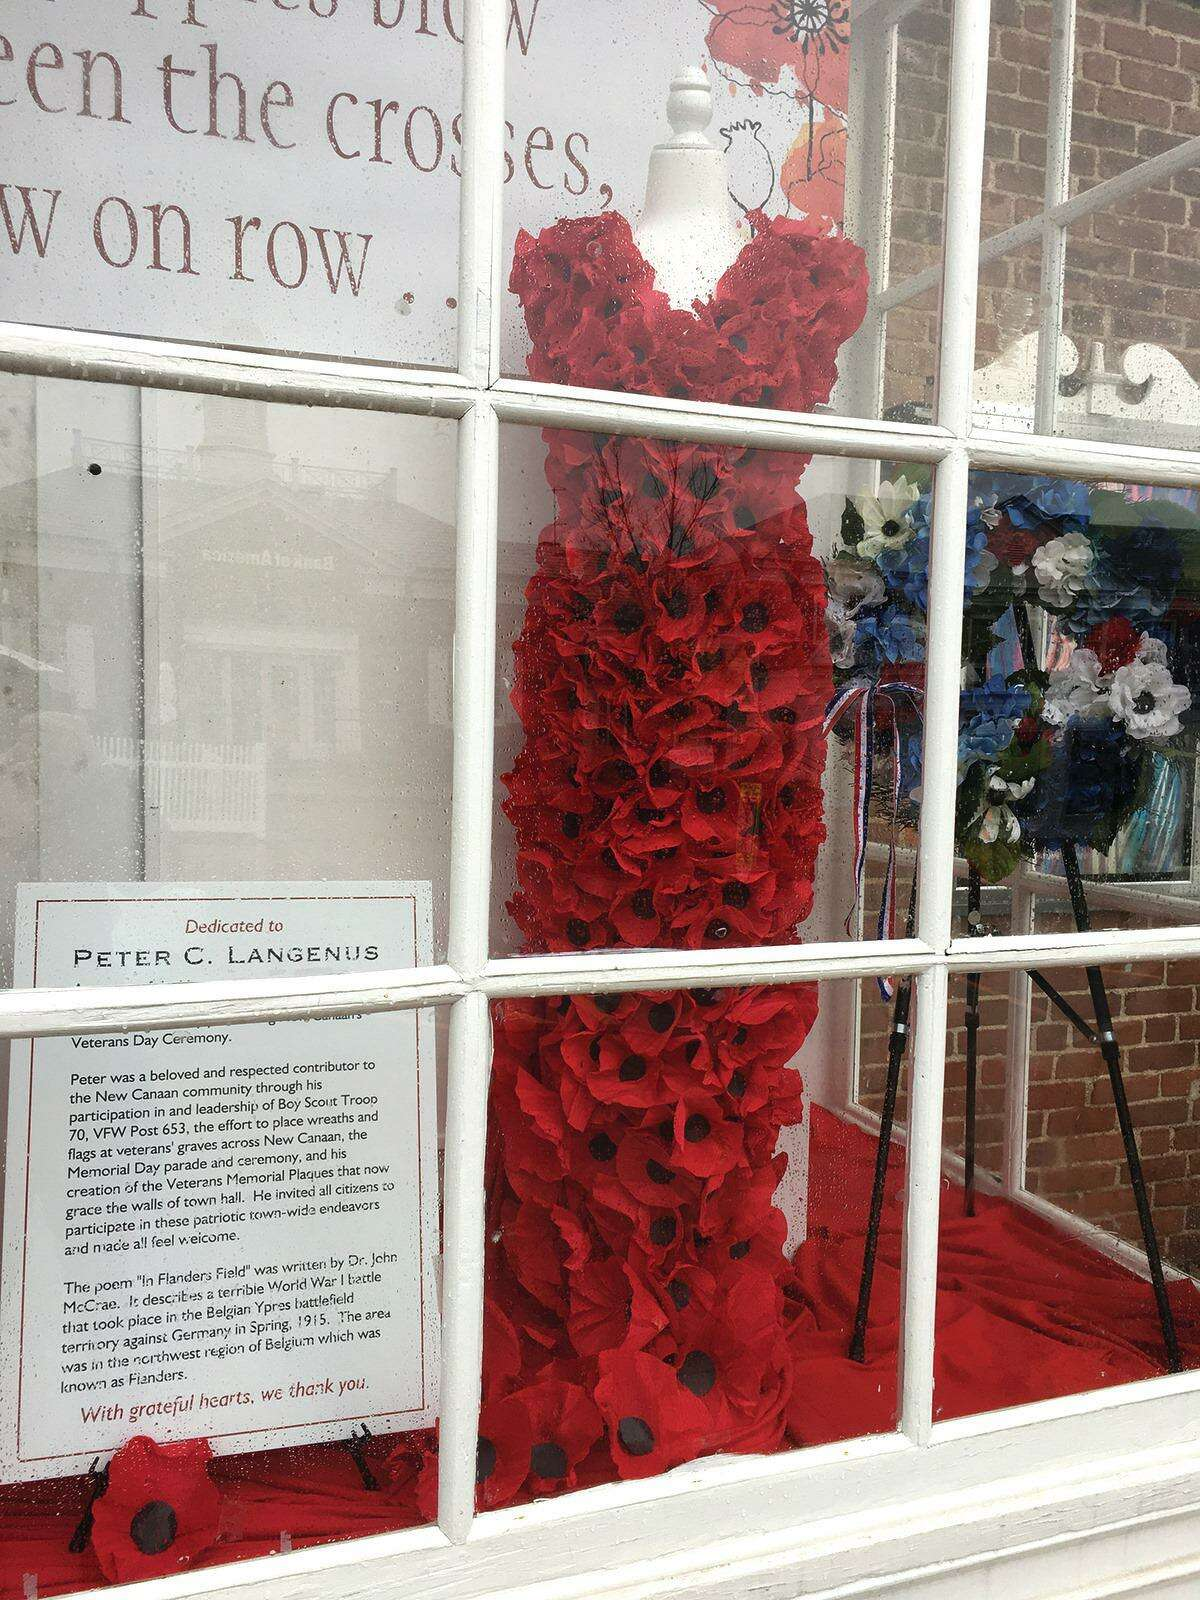 Members of the Hannah Benedict Carter Chapter of the Daughters of the American Revolution fashioned a dress from crepe paper poppies for a display in the window of the New Canaan Playhouse on Elm Street, dedicated to the late Peter Langevin.